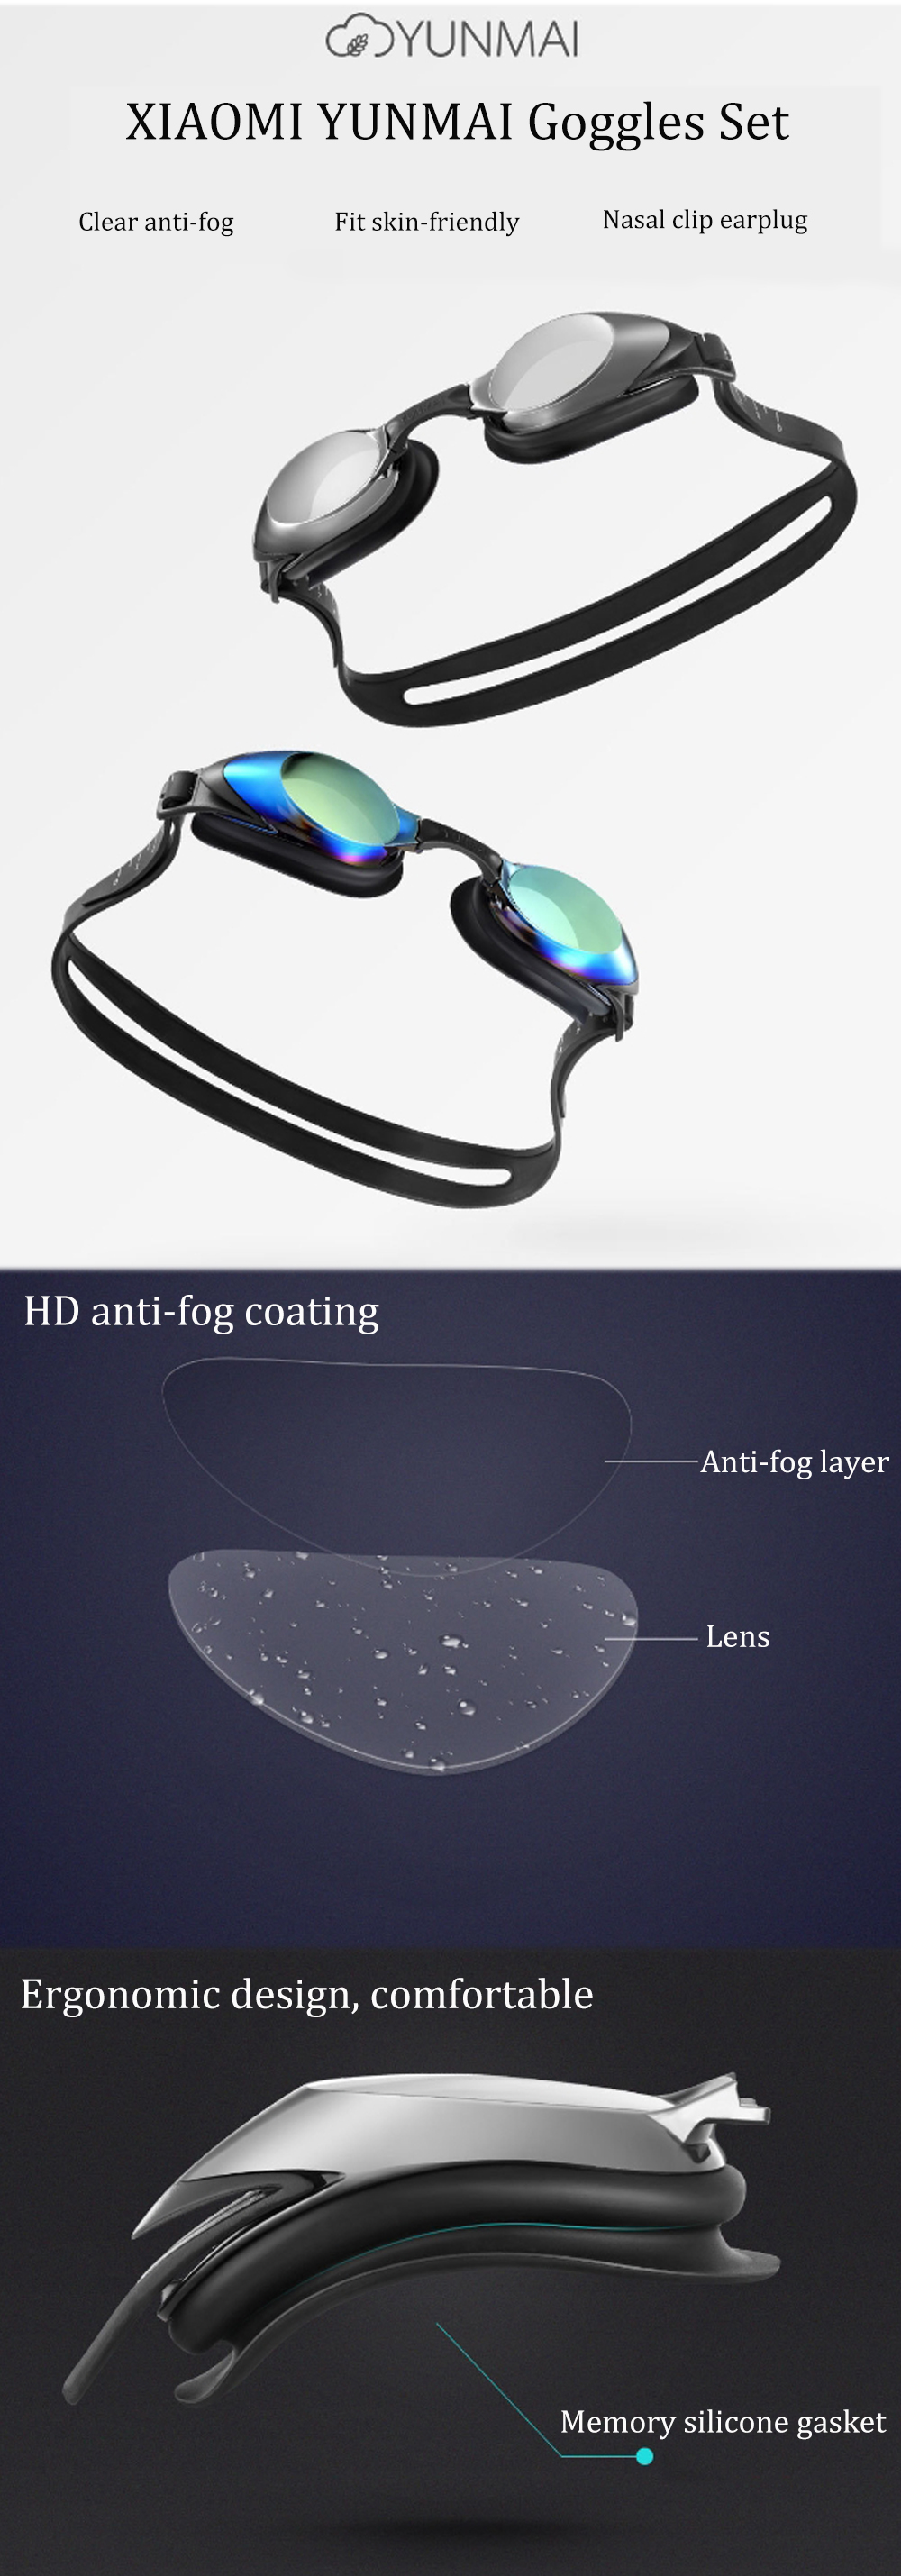 Xiaomi Yunmai Swimming Goggles Set HD Anti-fog Nose Stump Earplugs Silicone Swimming Glasses